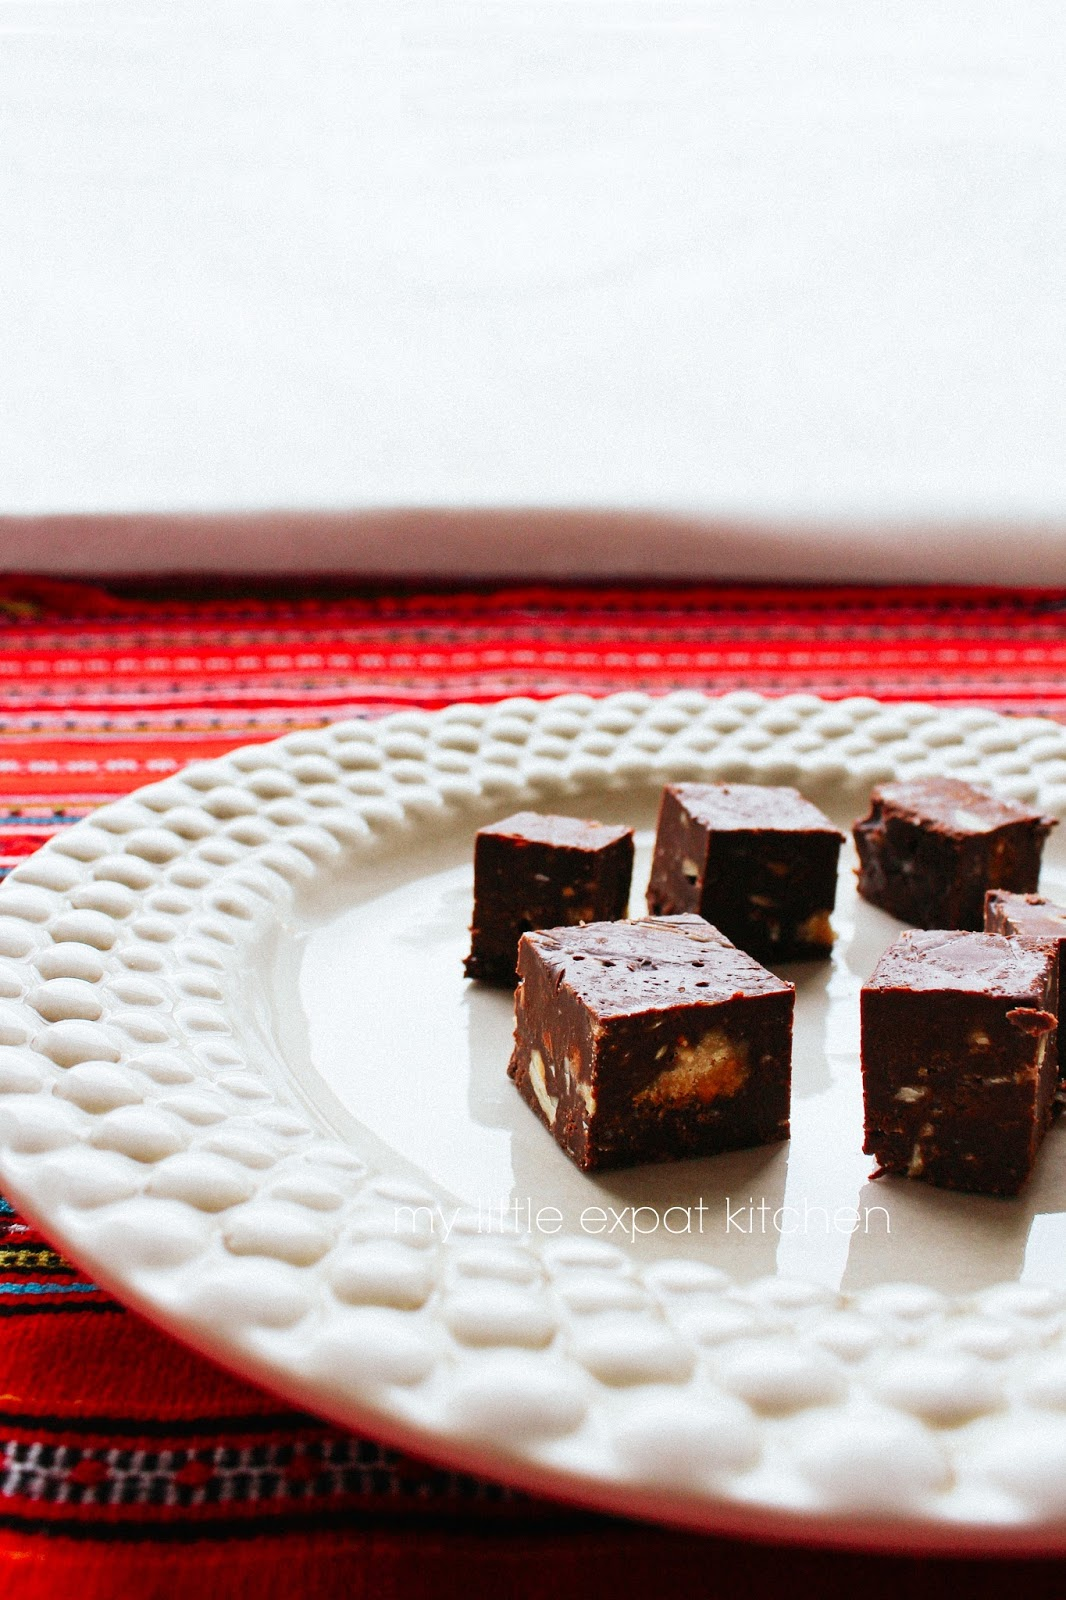 My Little Expat Kitchen: Easy chocolate fudge with hazelnuts and ...